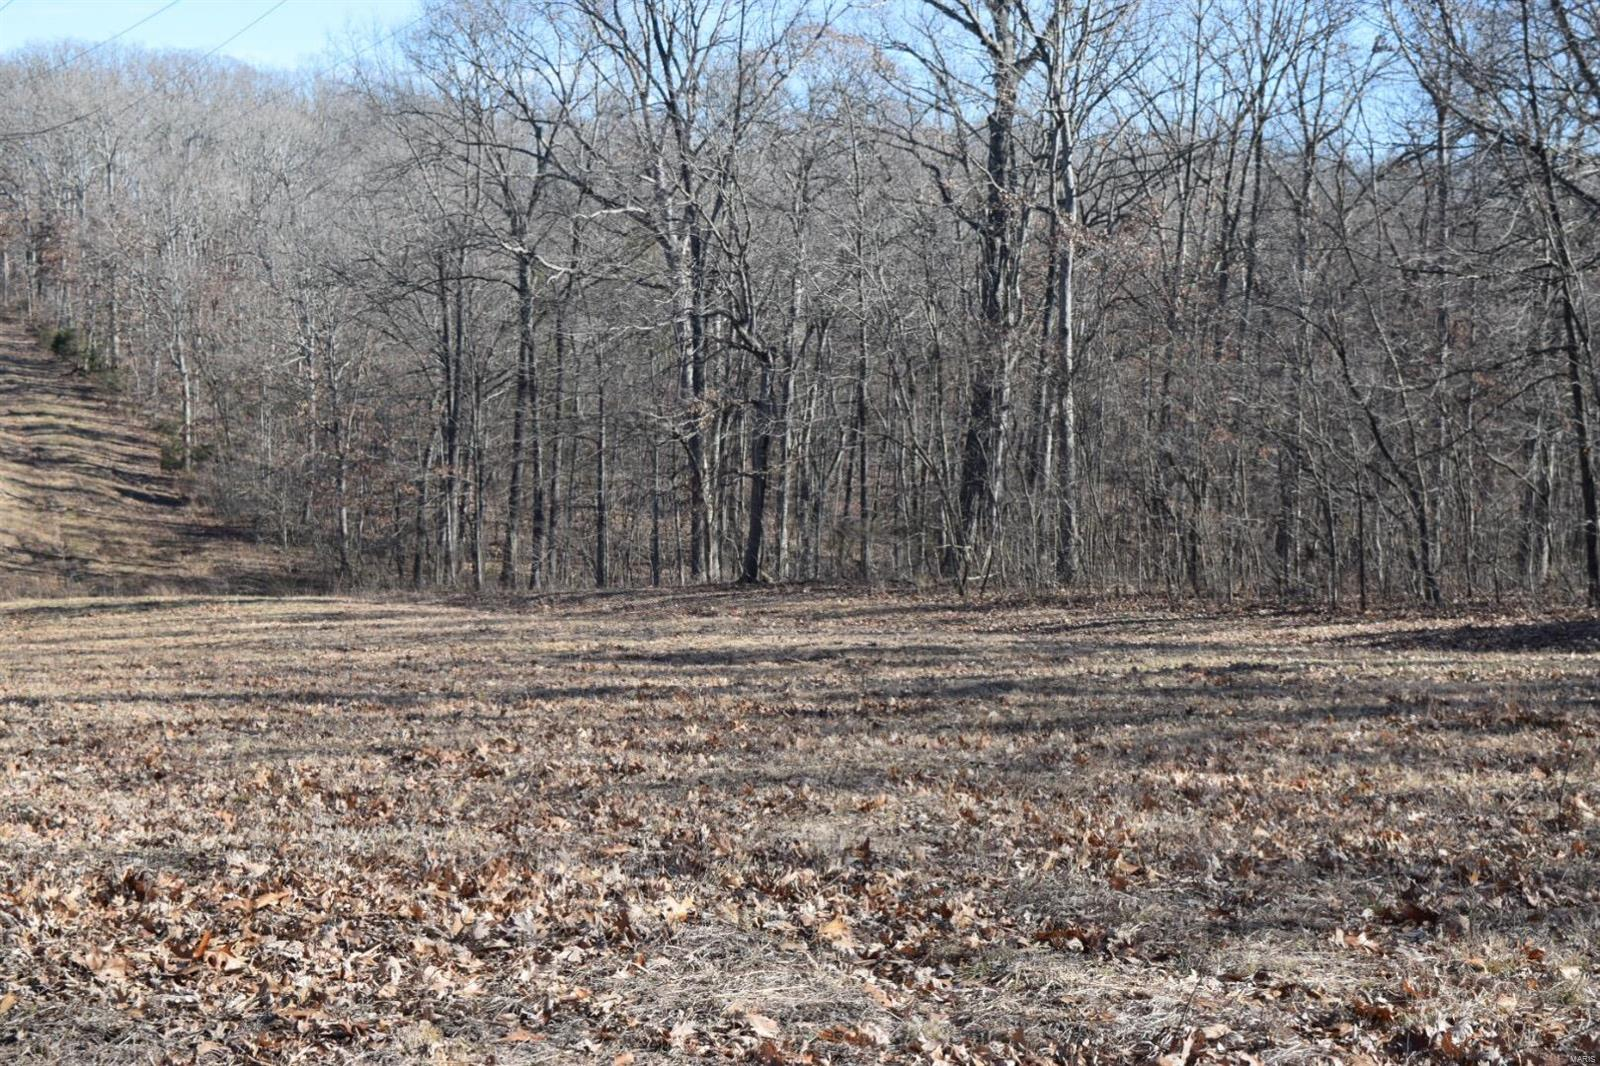 Endless possibilities with this 34.24 Acre lot in Wright City! Build your dream home or several homes on this picturesque, mostly wooded lot w/a small peaceful stream running through the property. There are no utilities on site, but electric, telephone, and public water are close by. Conveniently located just 15 minutes from Hwy 70. Don't miss out on this AMAZING opportunity.